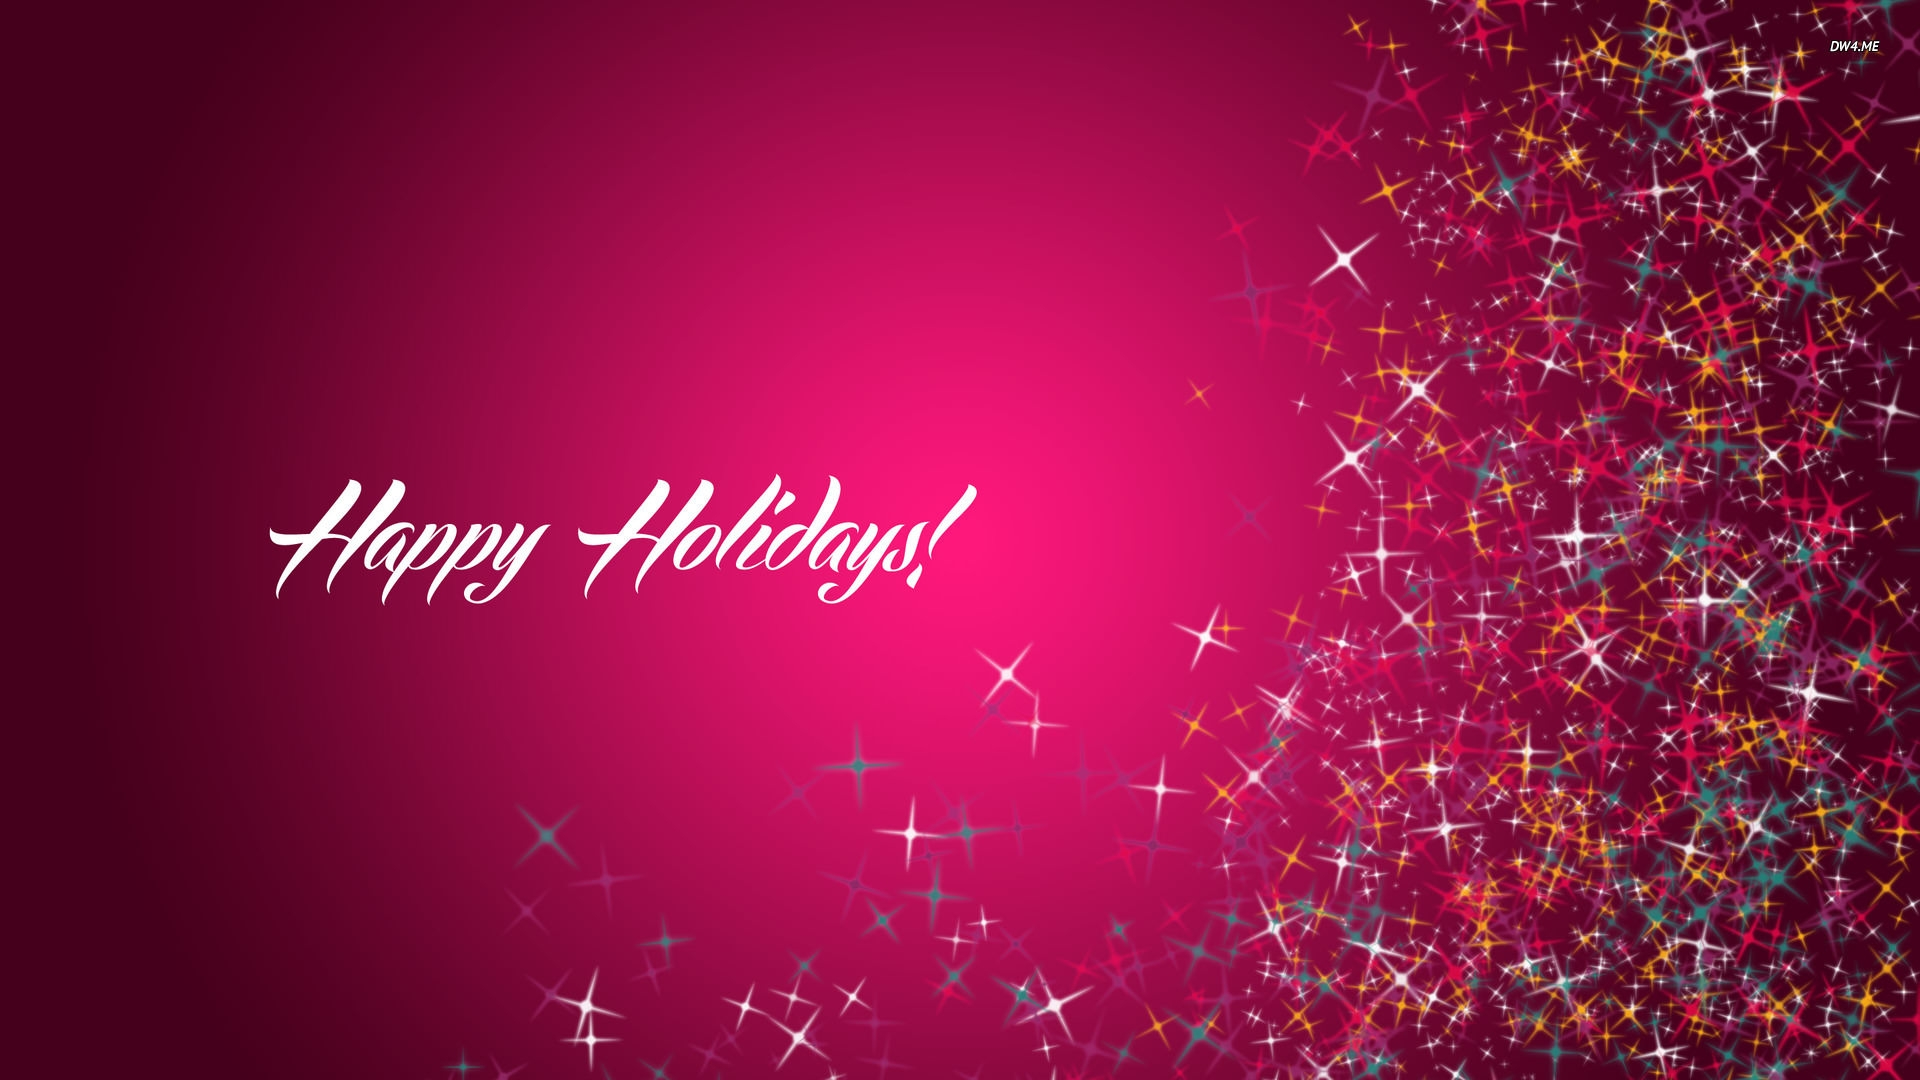 Desktop wallpapers holiday free - Simple Holiday Wallpaper